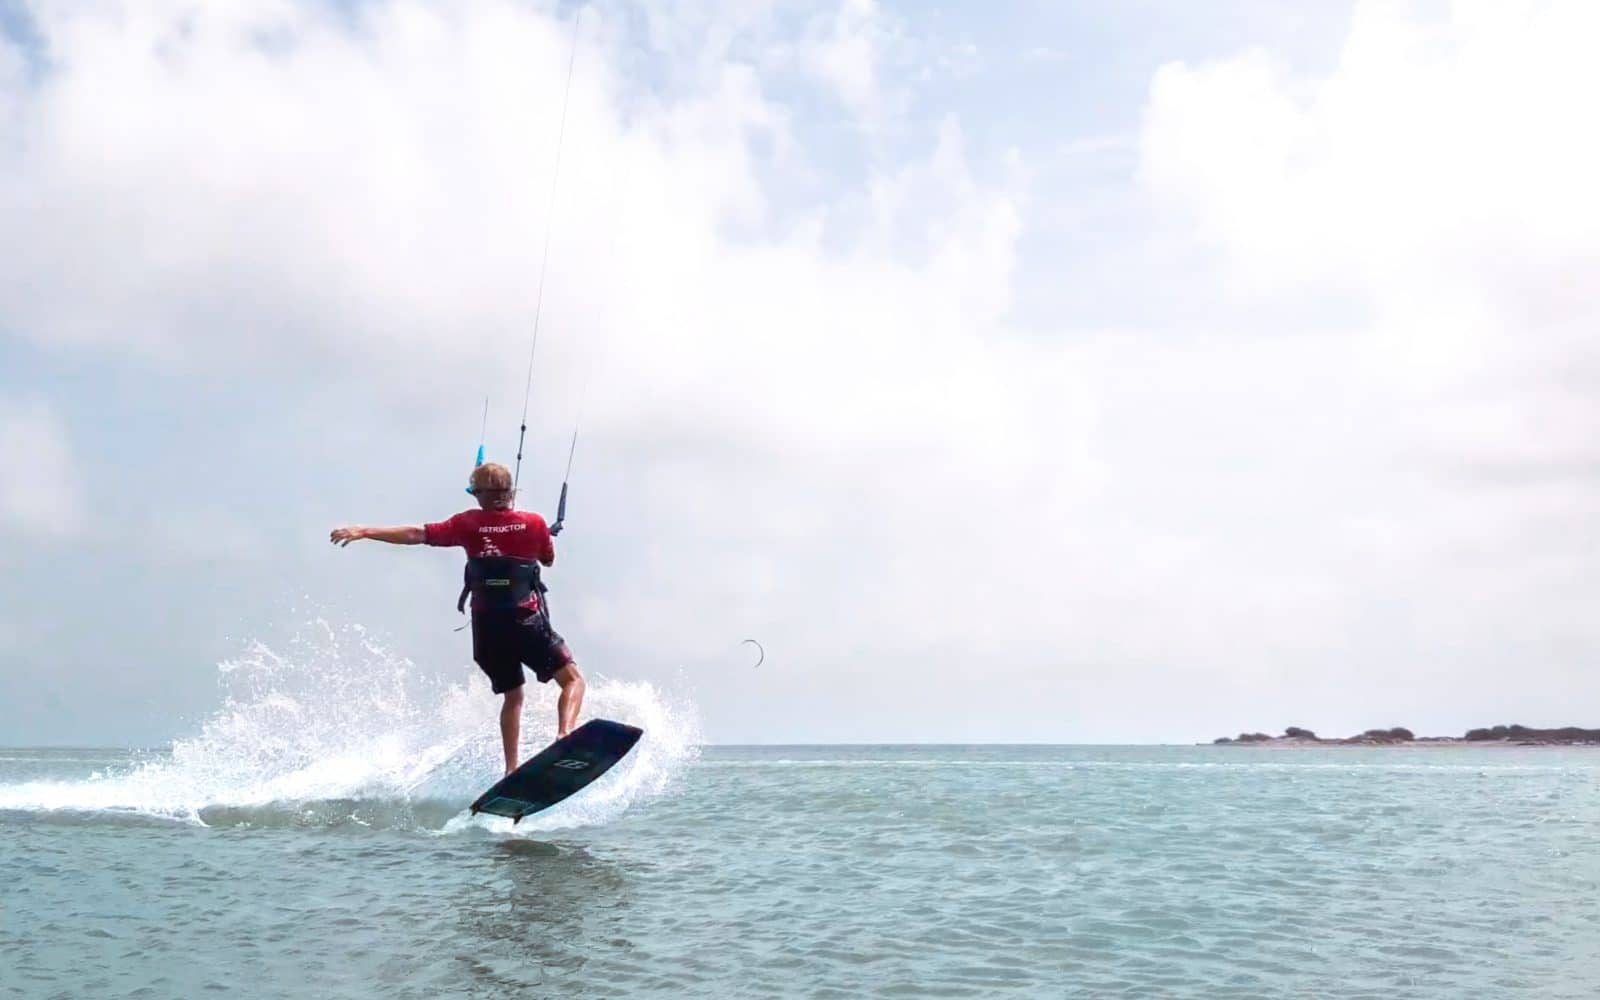 Inverted front roll - a step by step guide to mastering this kitesurfing trick 3